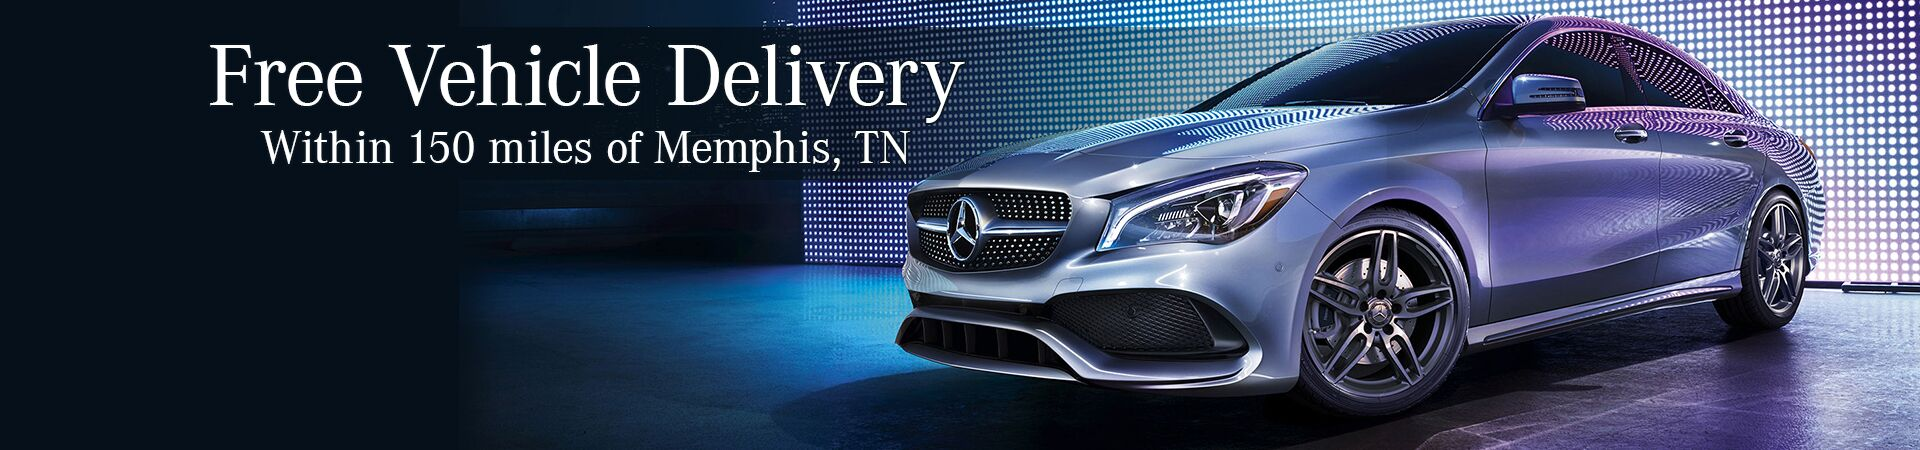 Free vehicle delivery